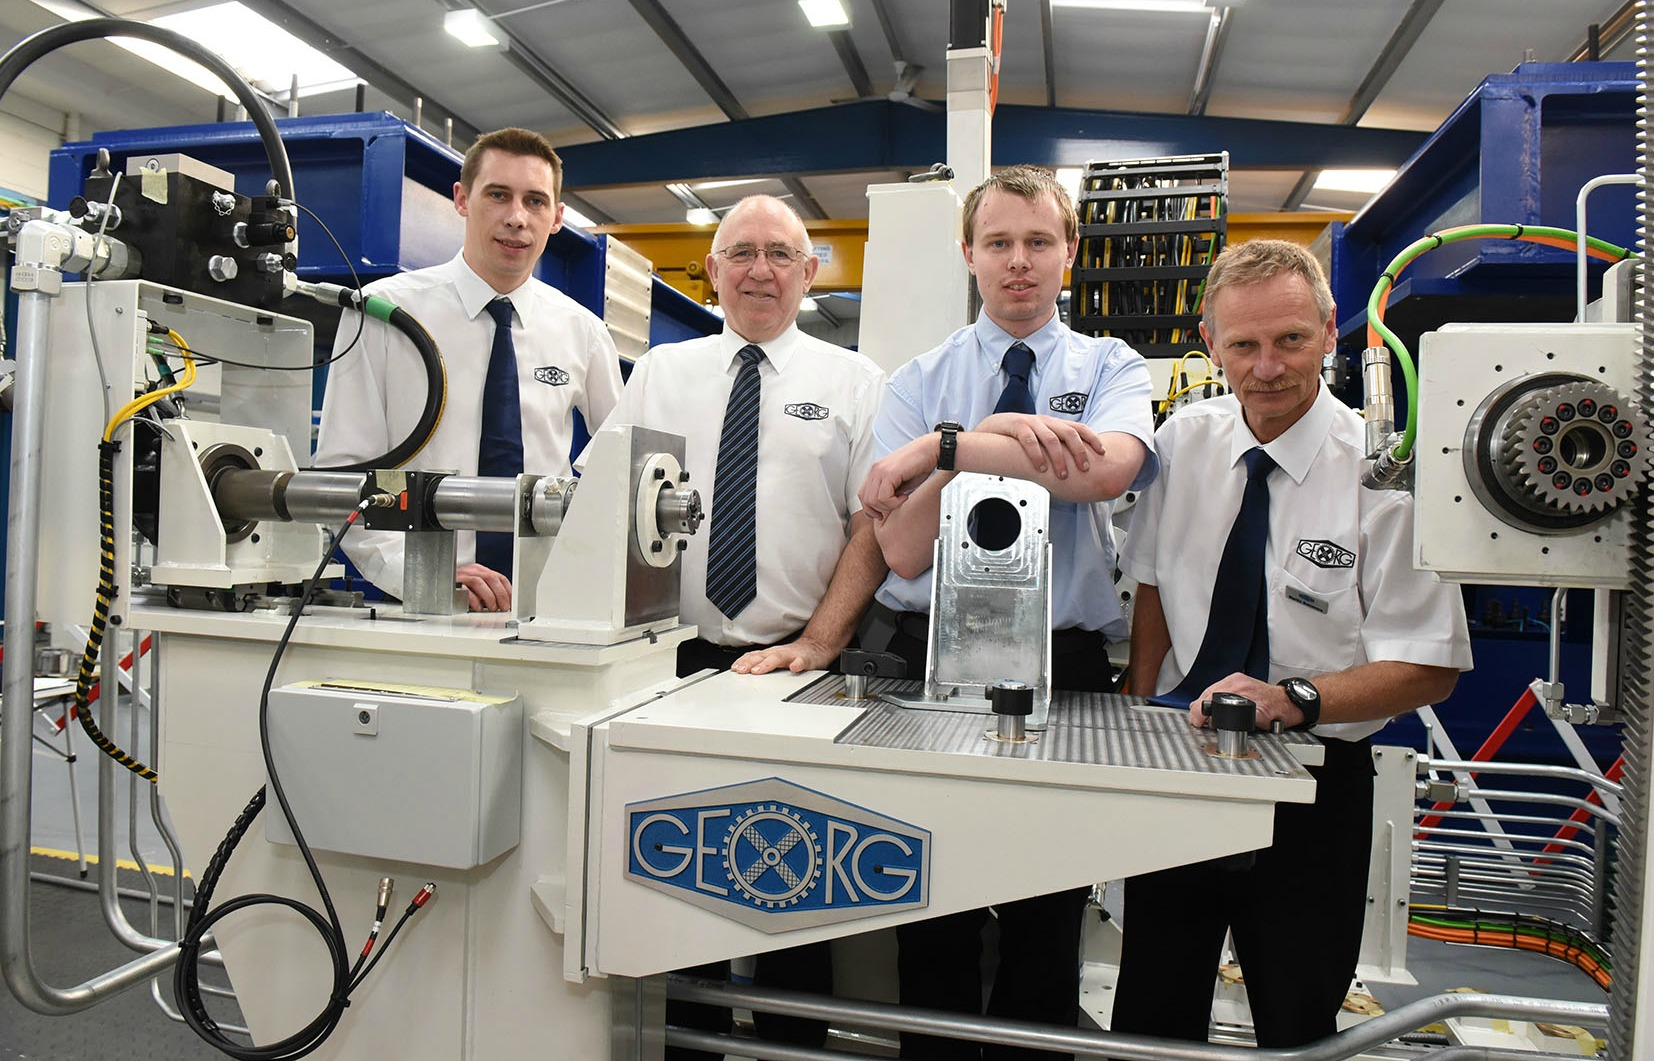 L to R: Chris Sharman; Mike Mason; Dan Boggild, and Martin Summers (all engineers at Georg UK).